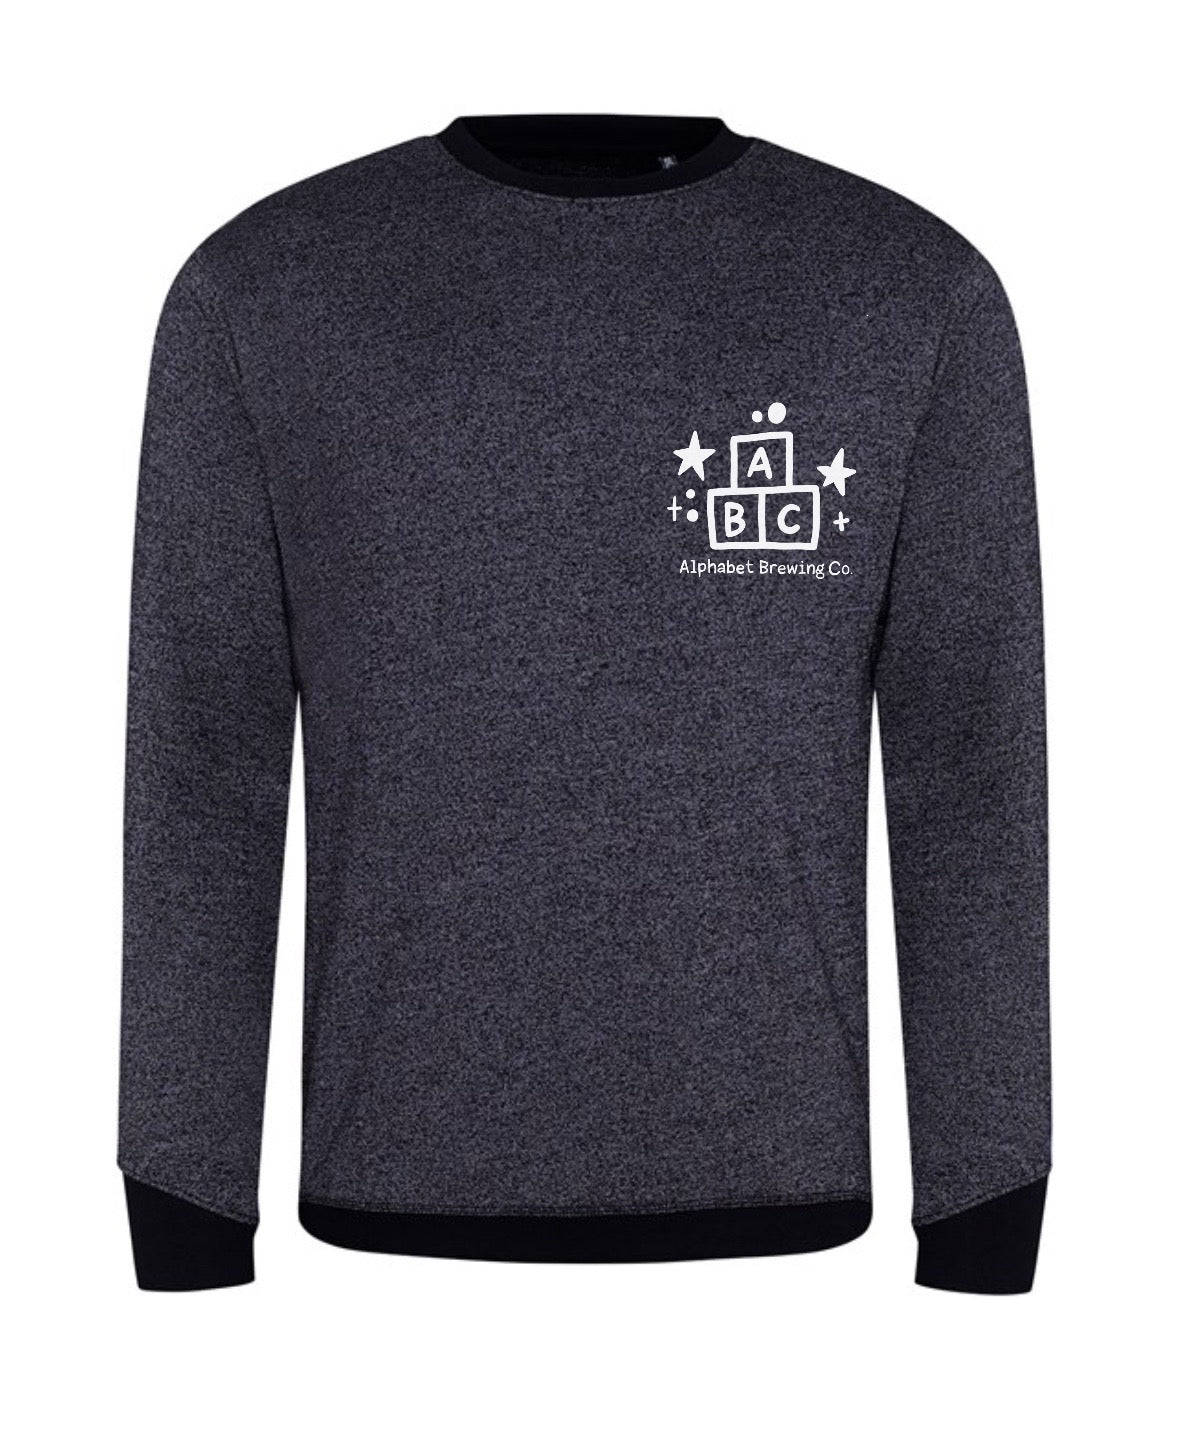 Unisex Black Marl ABC Sweatshirt